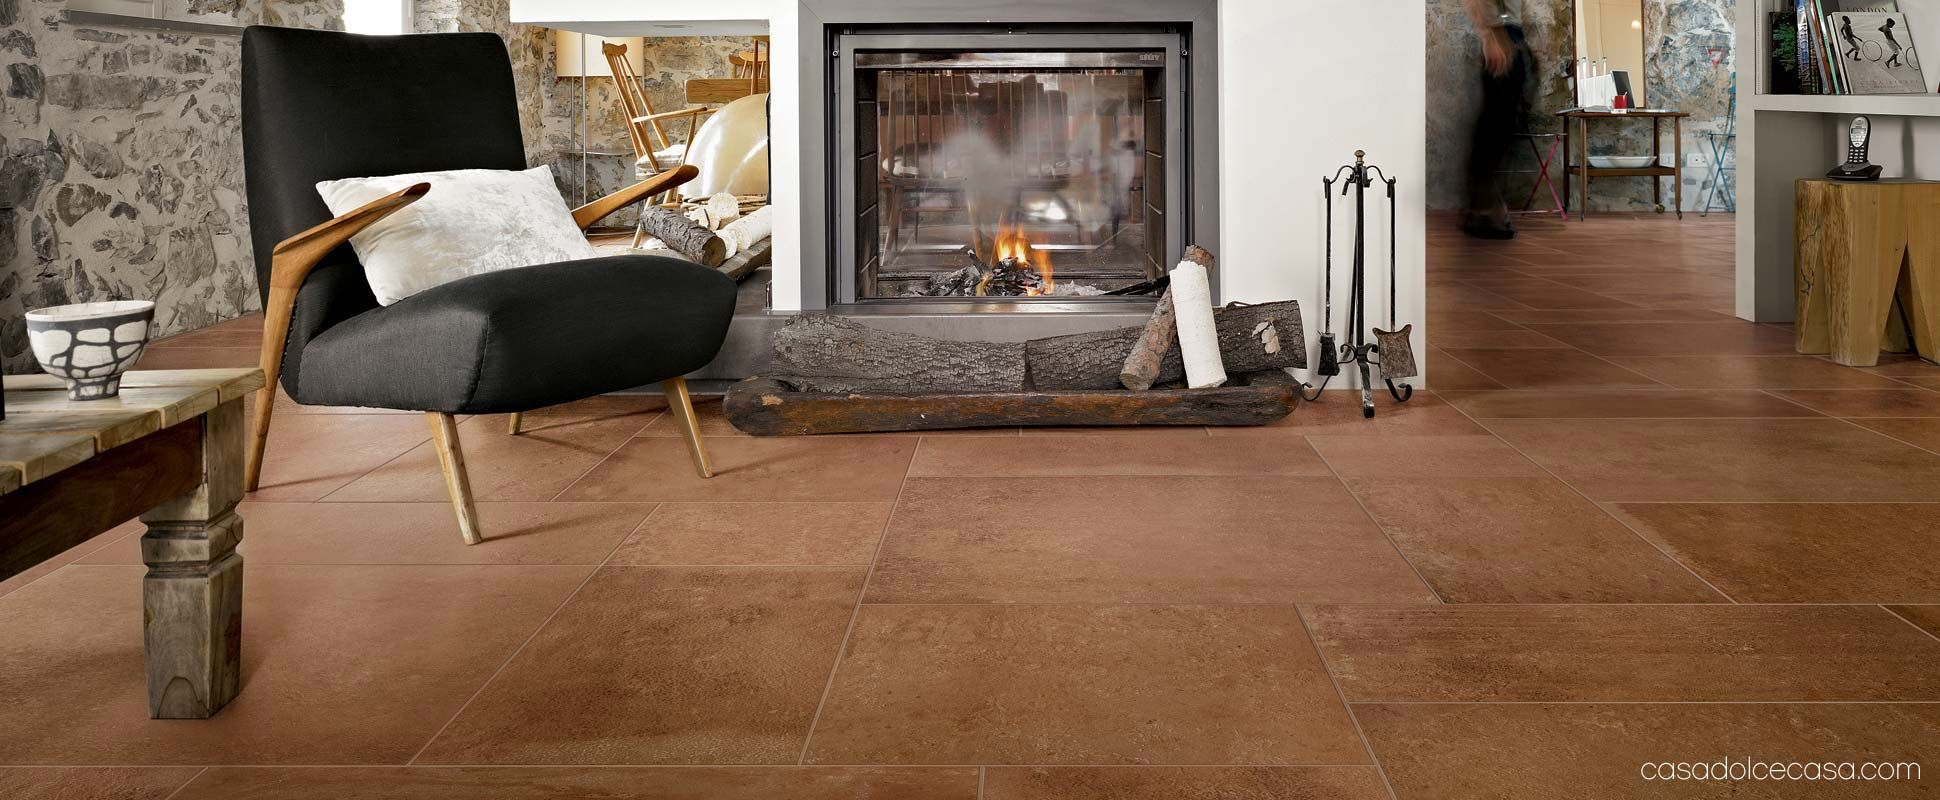 Terra by casa dolce casa terracotta tiles floor imitation with terra by casa dolce casa terracotta tiles floor imitation with ceramic tiles terra collection dailygadgetfo Images